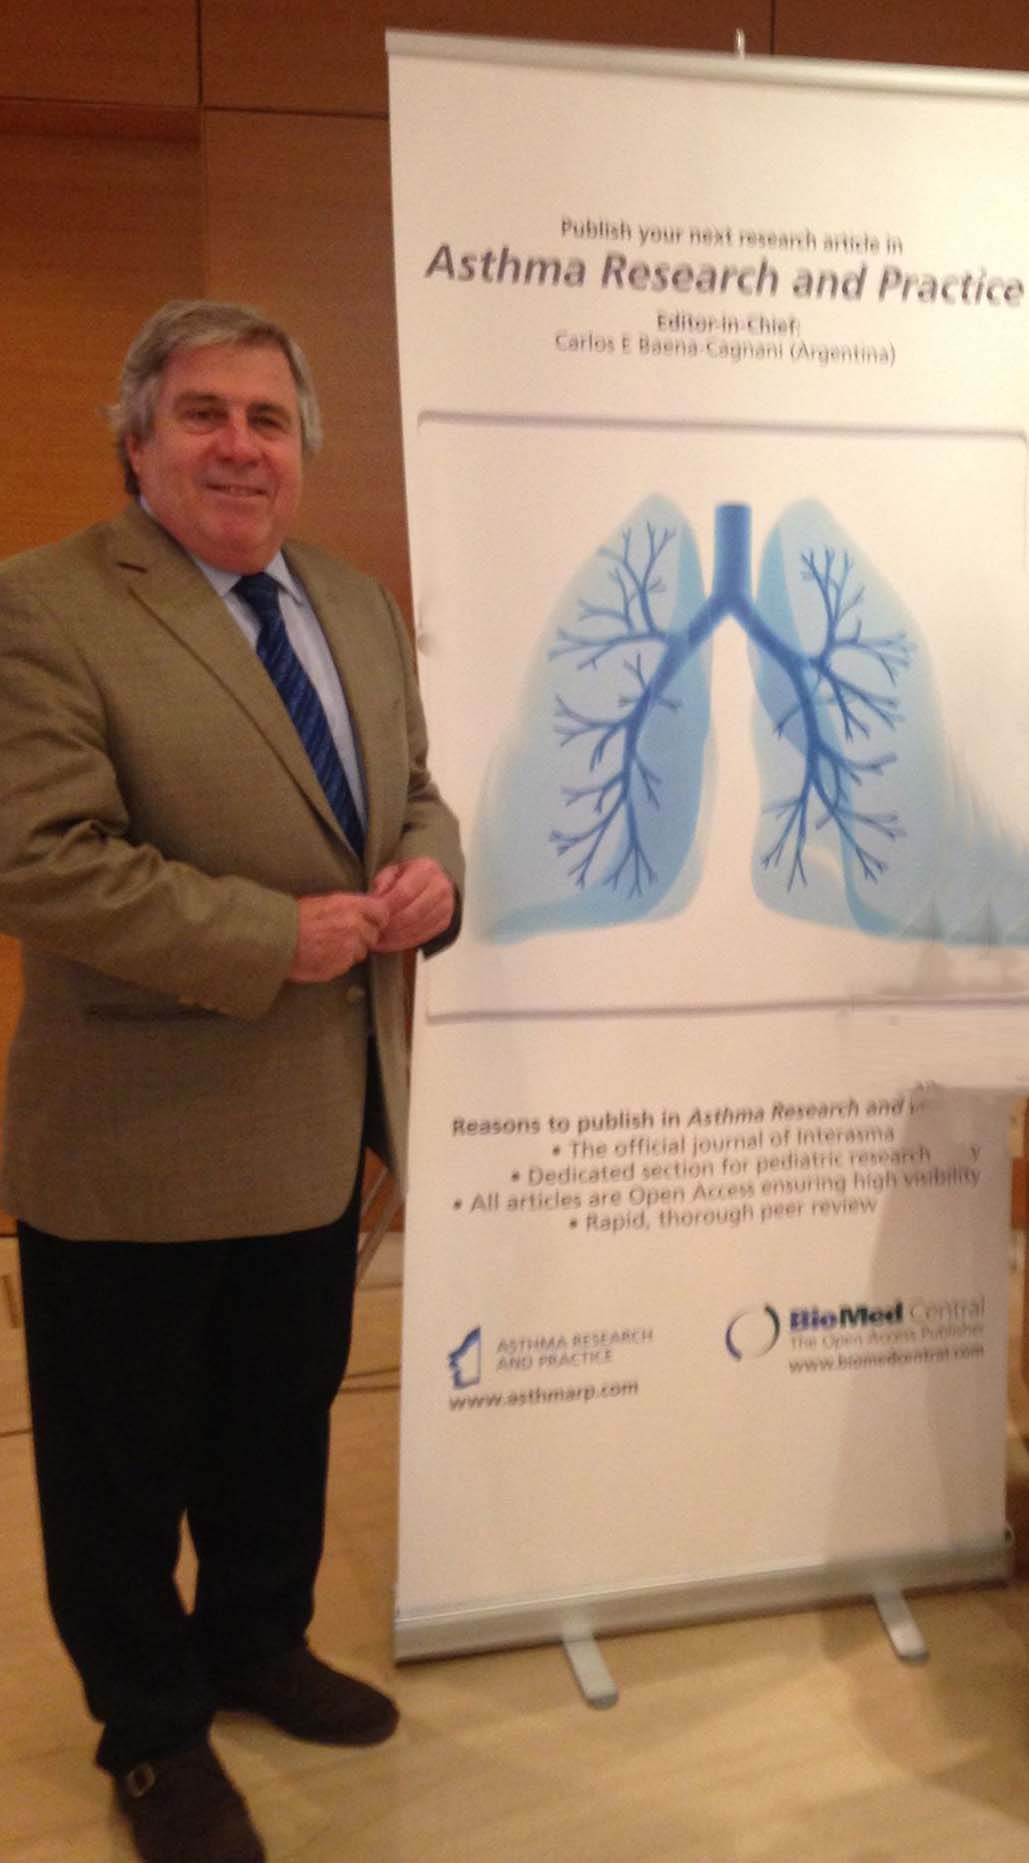 asthma-research-practice-the-new-interasma-journal